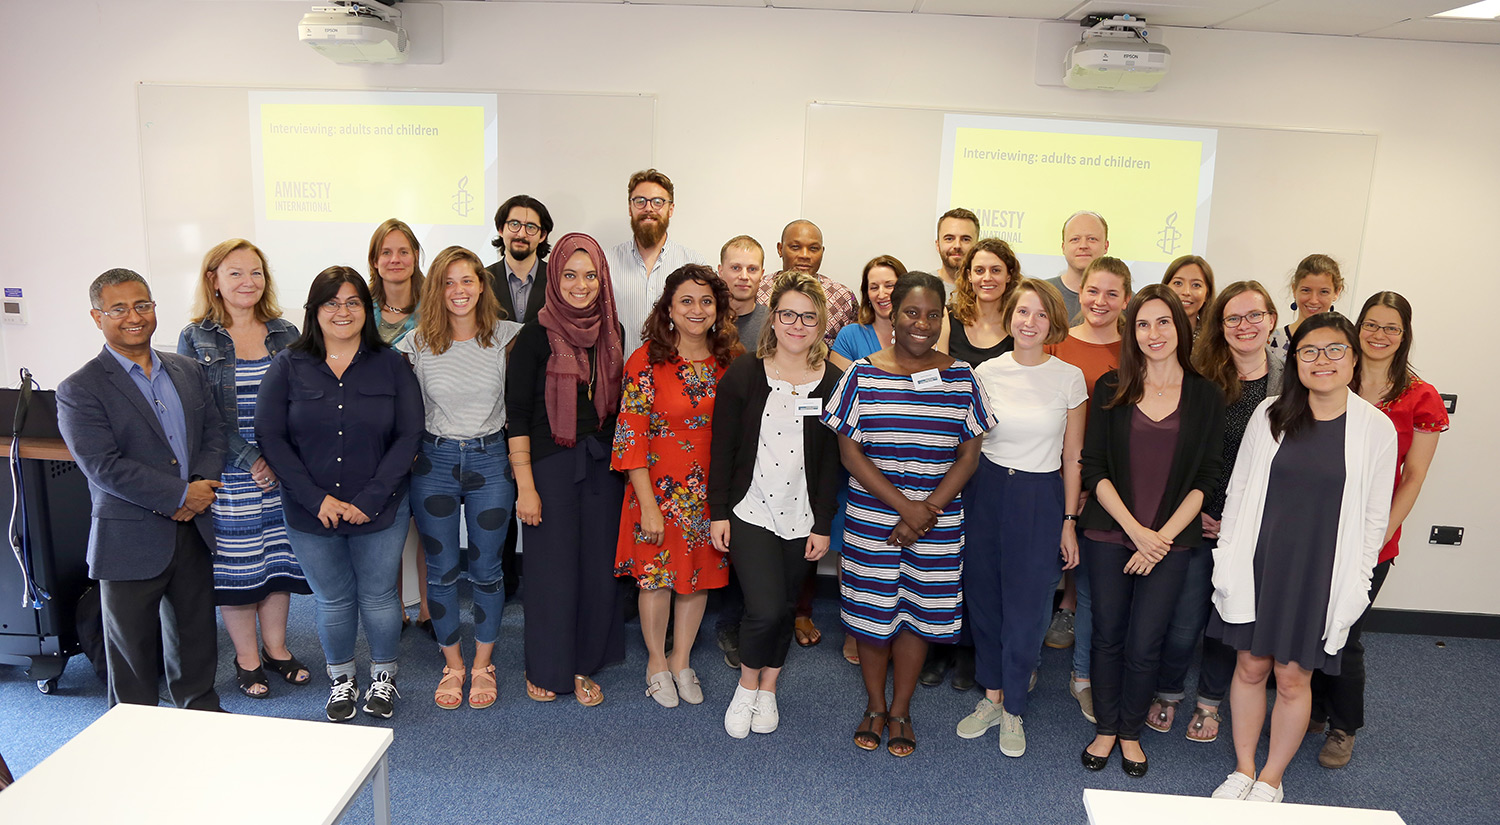 Human Rights Summer School Delegates 2018